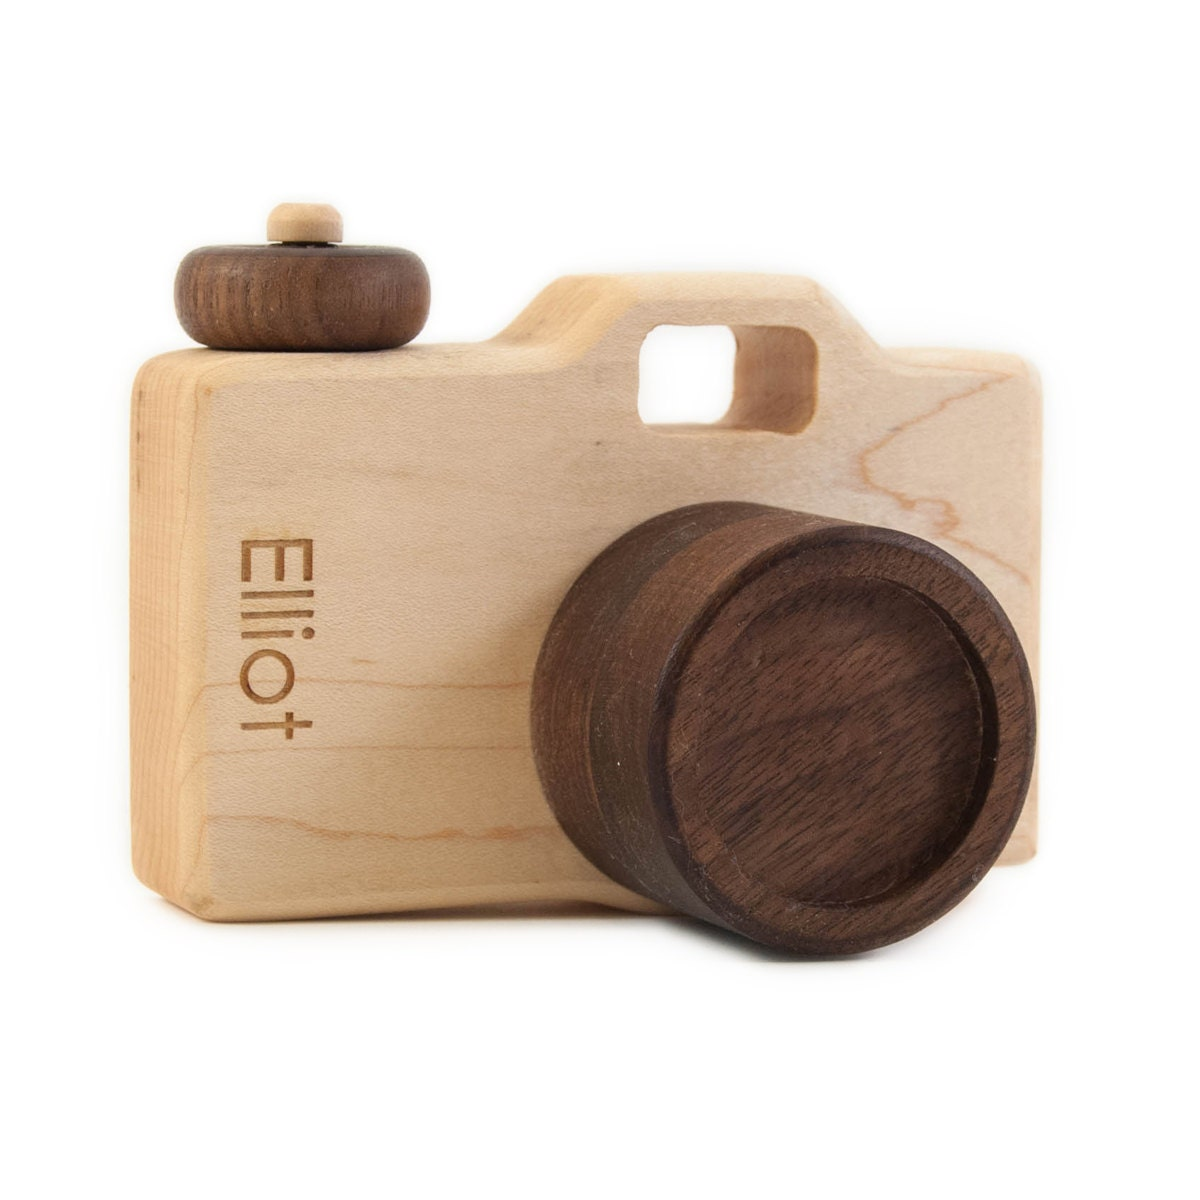 Personalized Wooden Toy Camera Imaginative Play Pretend